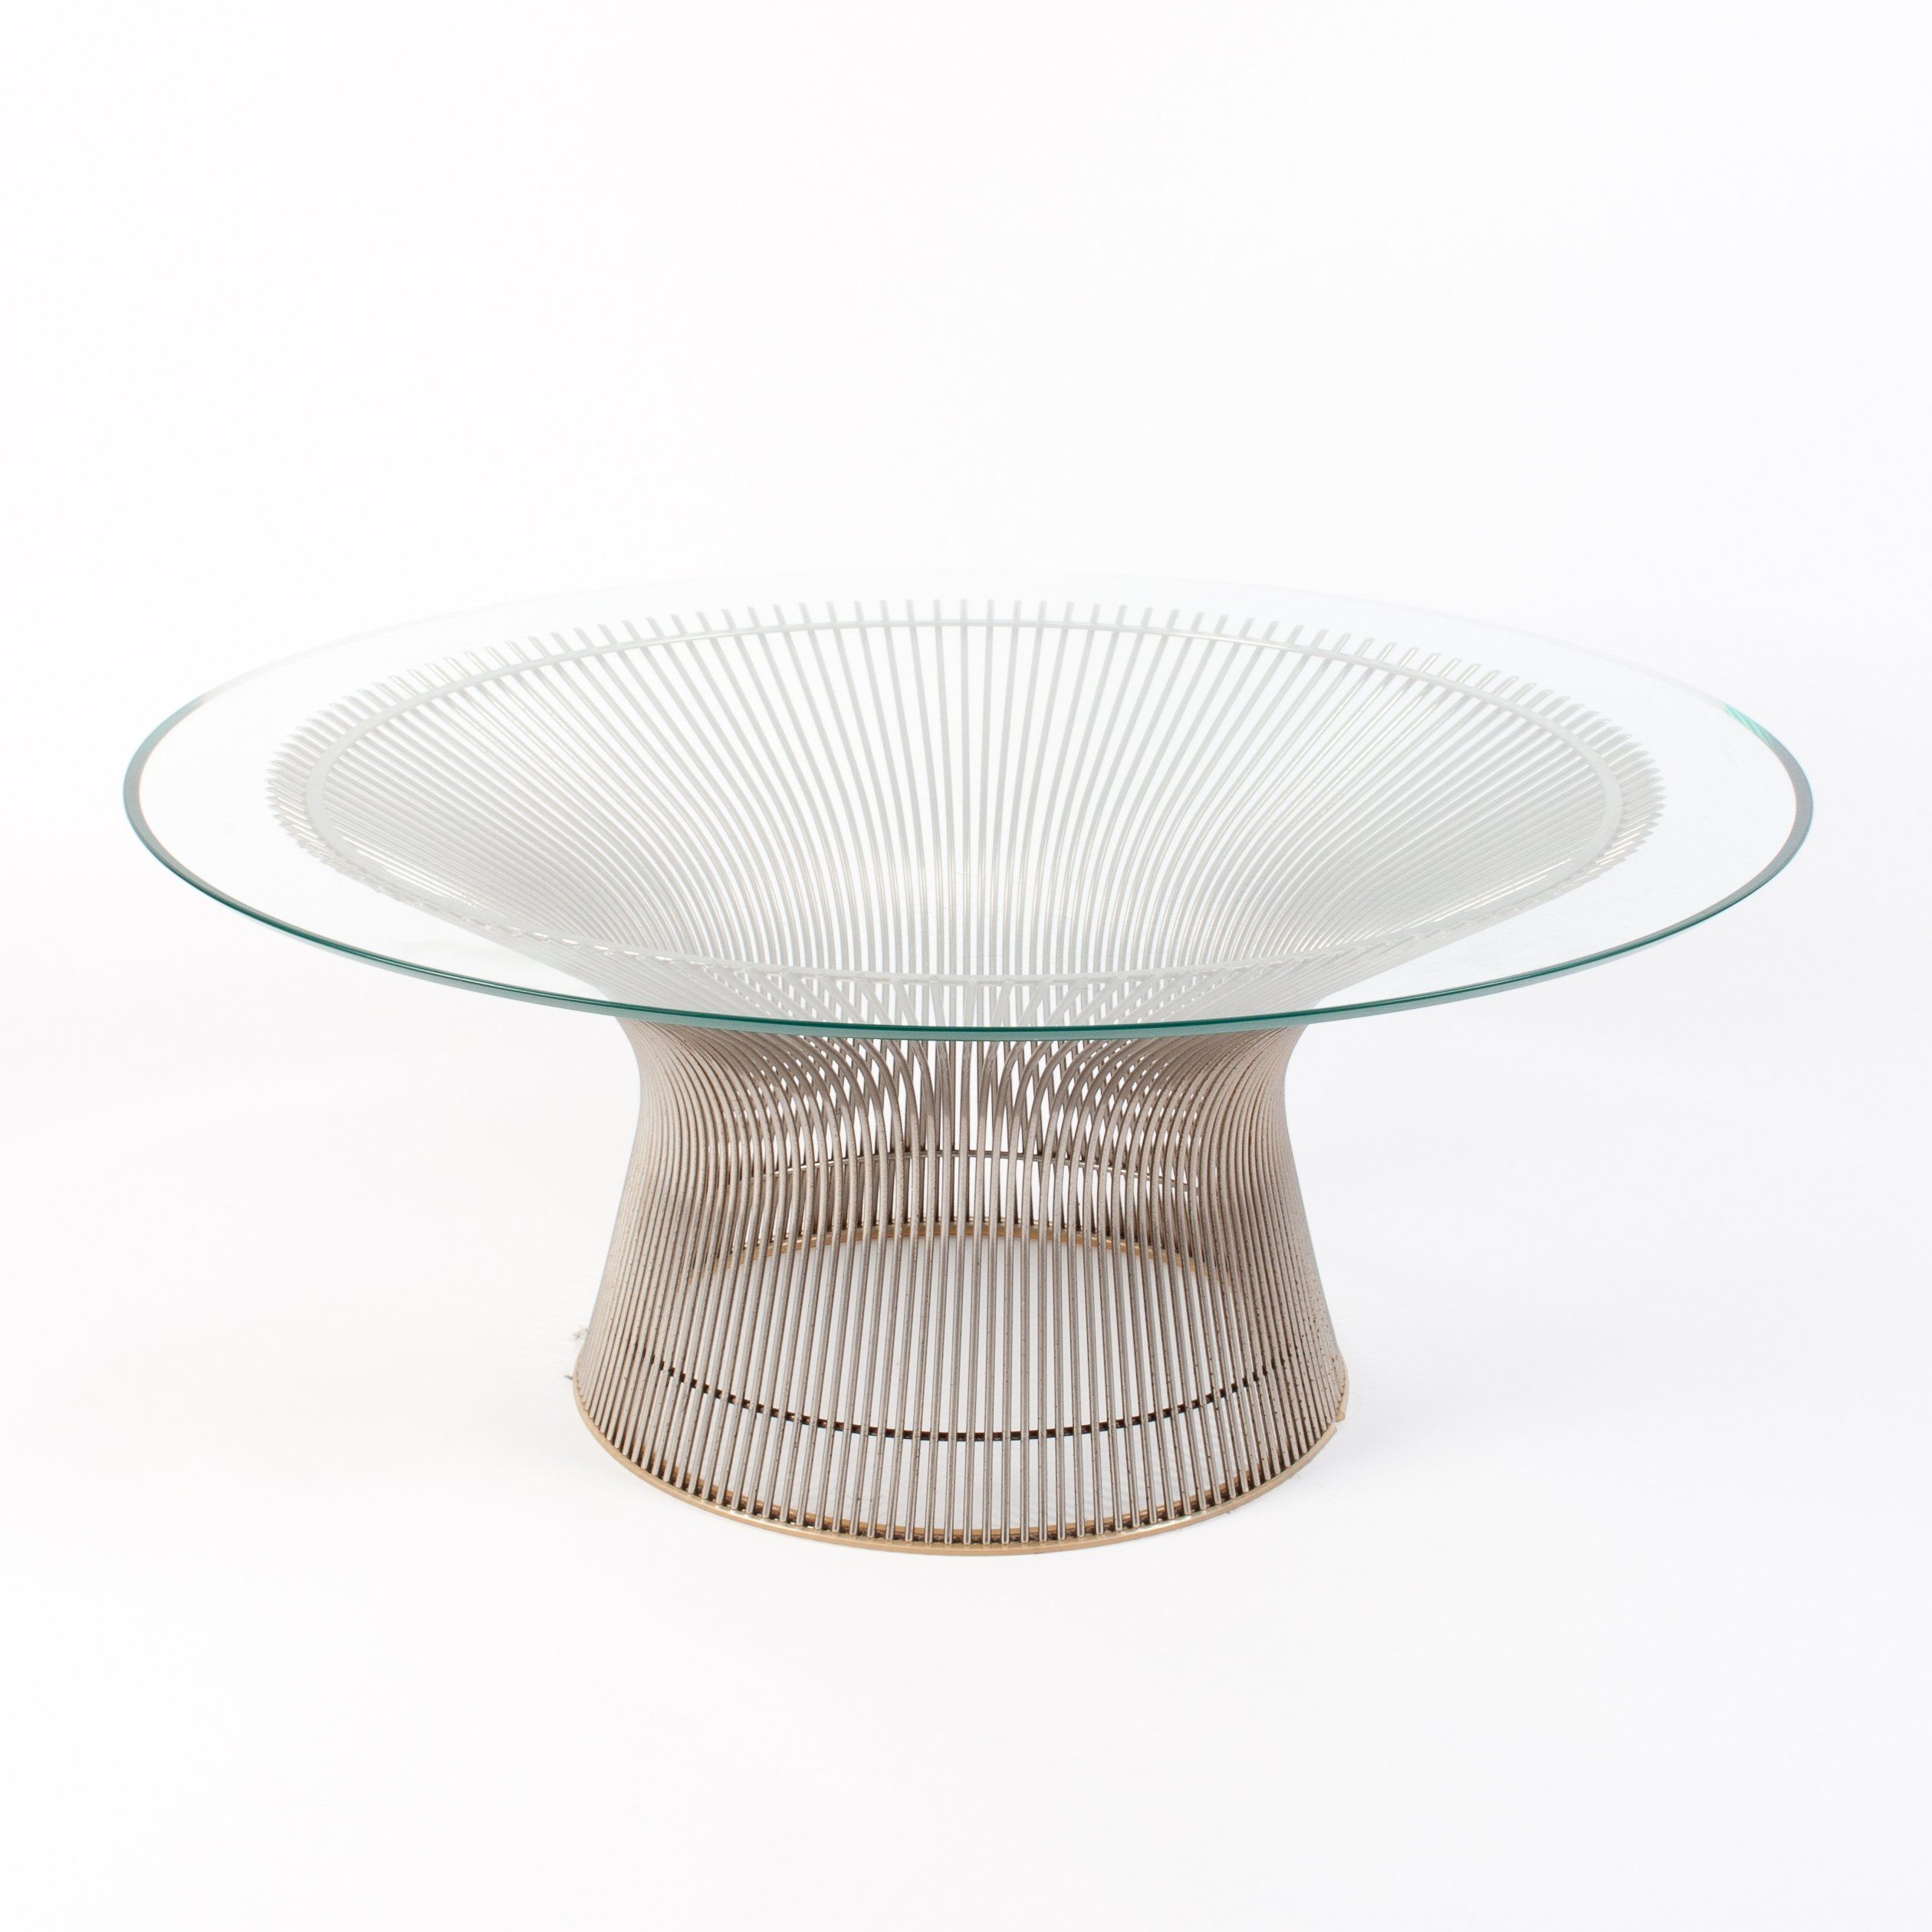 Coffee table by Warren Platner for Knoll 1960s